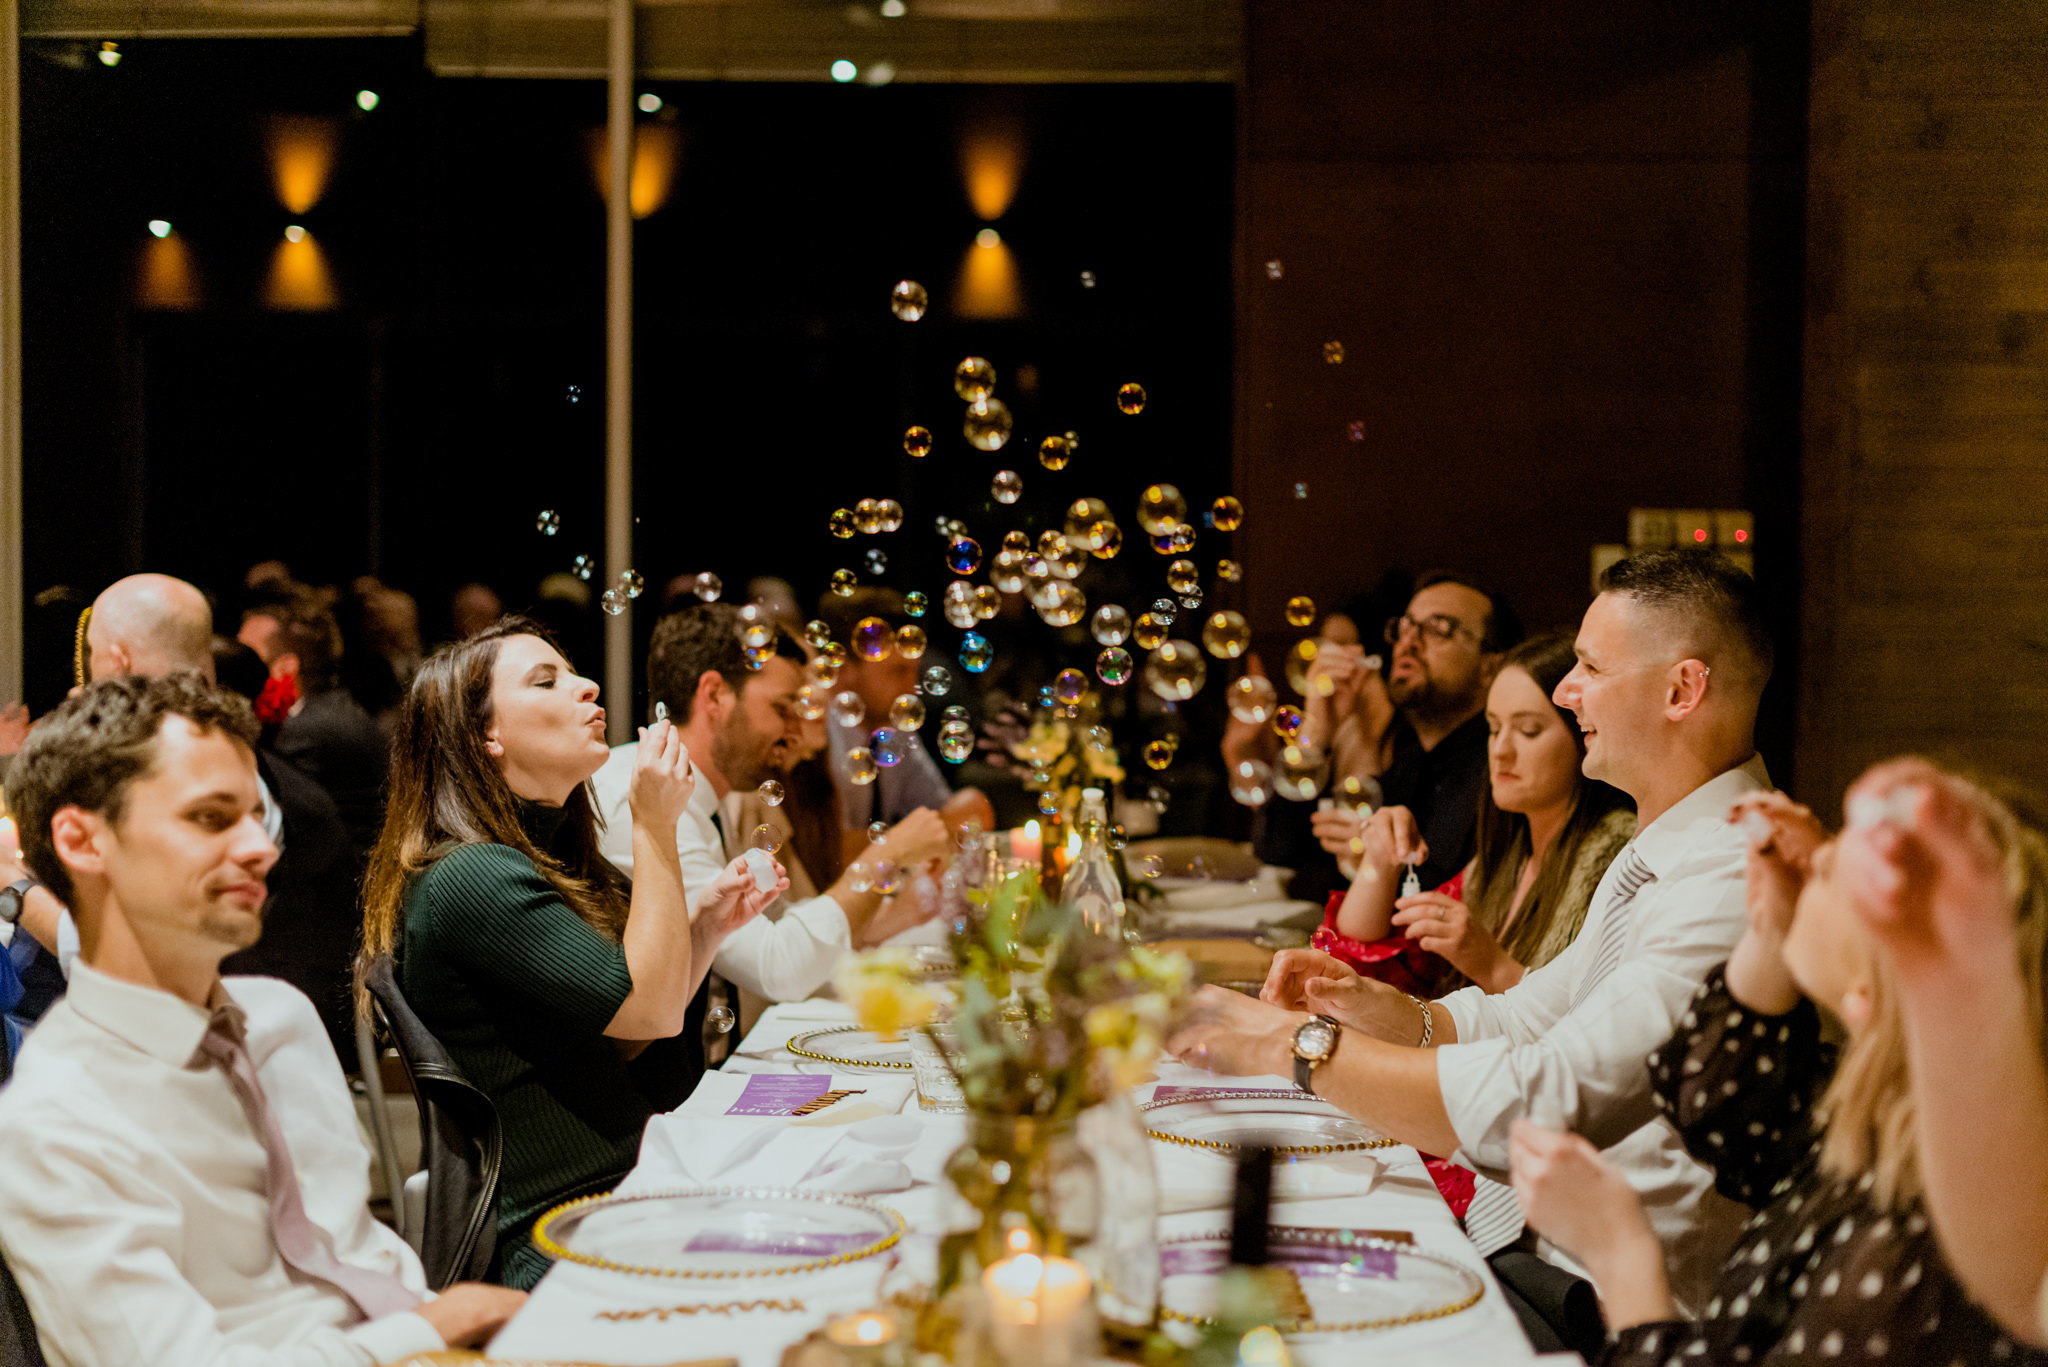 Guests blowing bubbles at a long dinner table